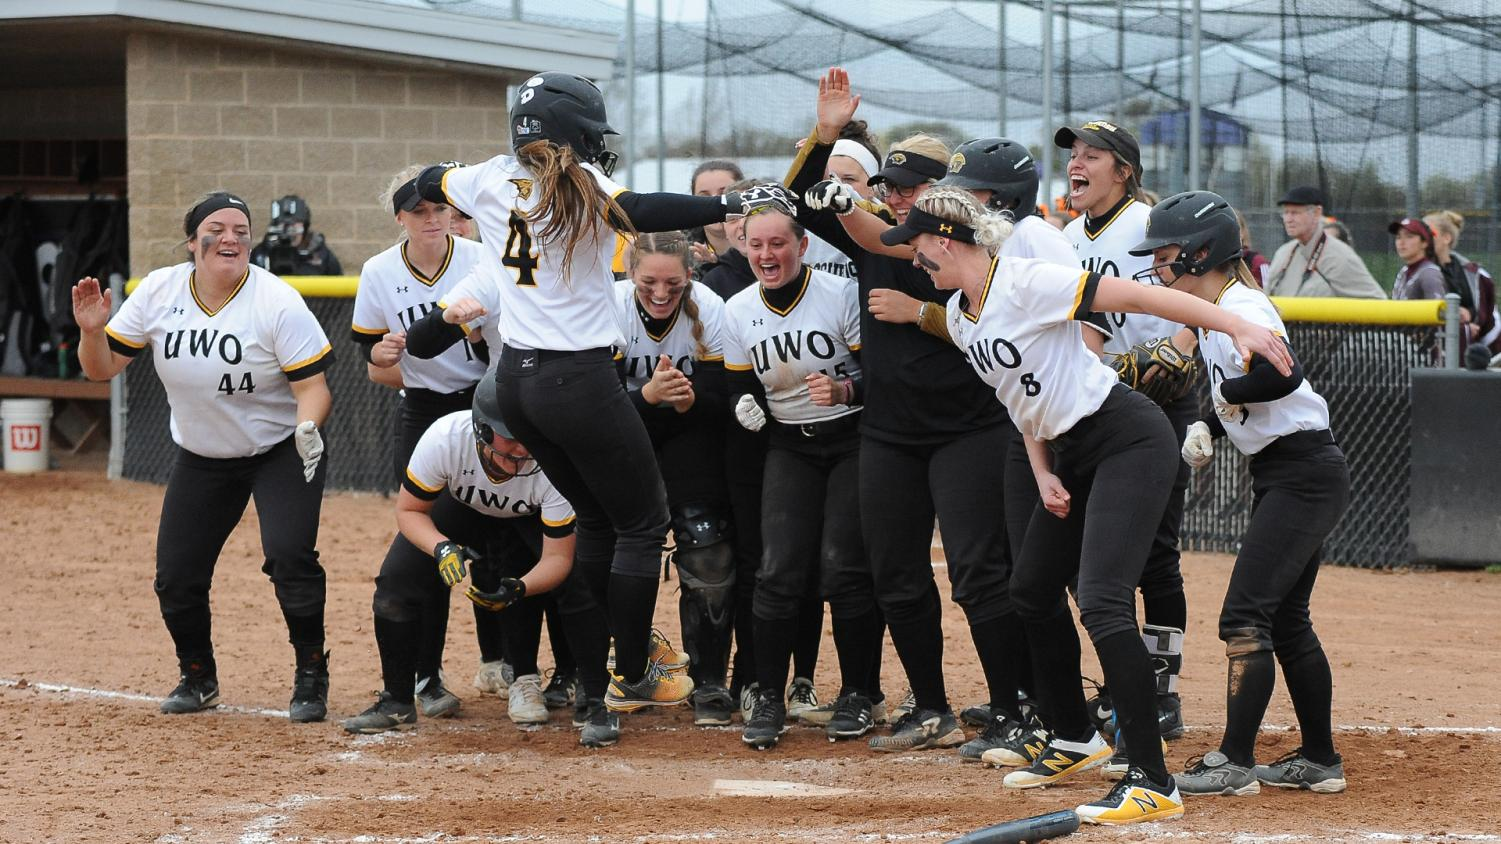 Kailee Garstecki's surrounded by her teammates following her two-run homerun versus the Warhawks. The team finished the year with a 23-17 record.